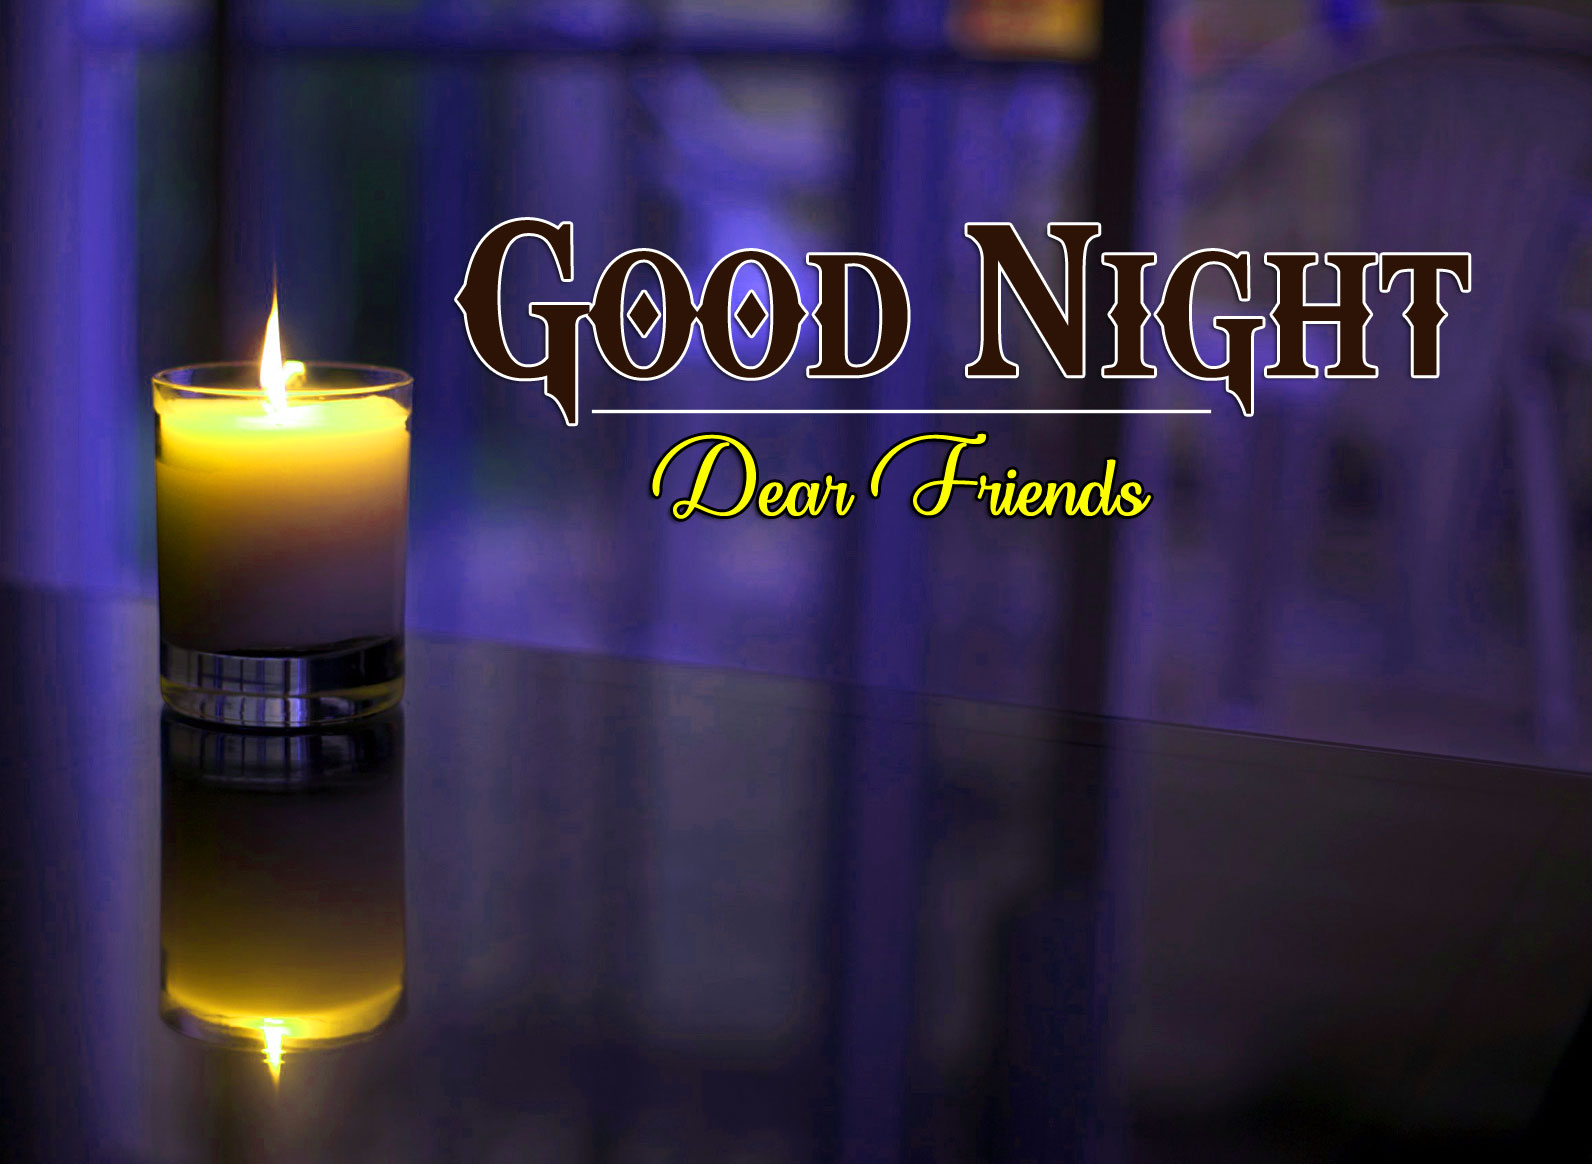 Free Top Good Night Wishes k Images Pics Download